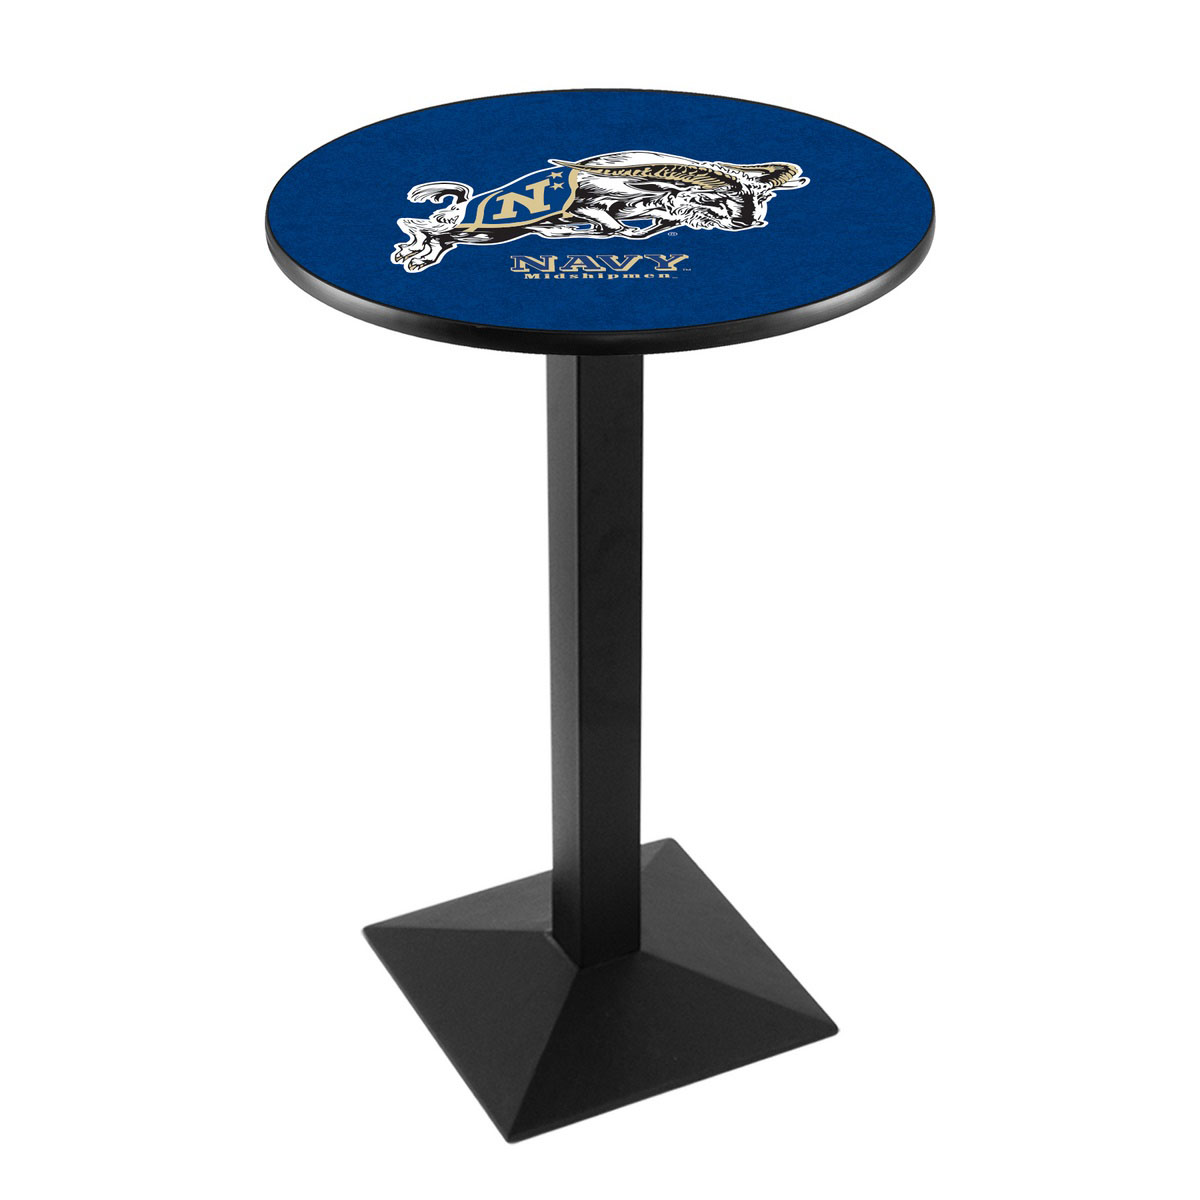 Money saving Us Naval Academy Logo Pub Bar Table Square Stand Product Photo